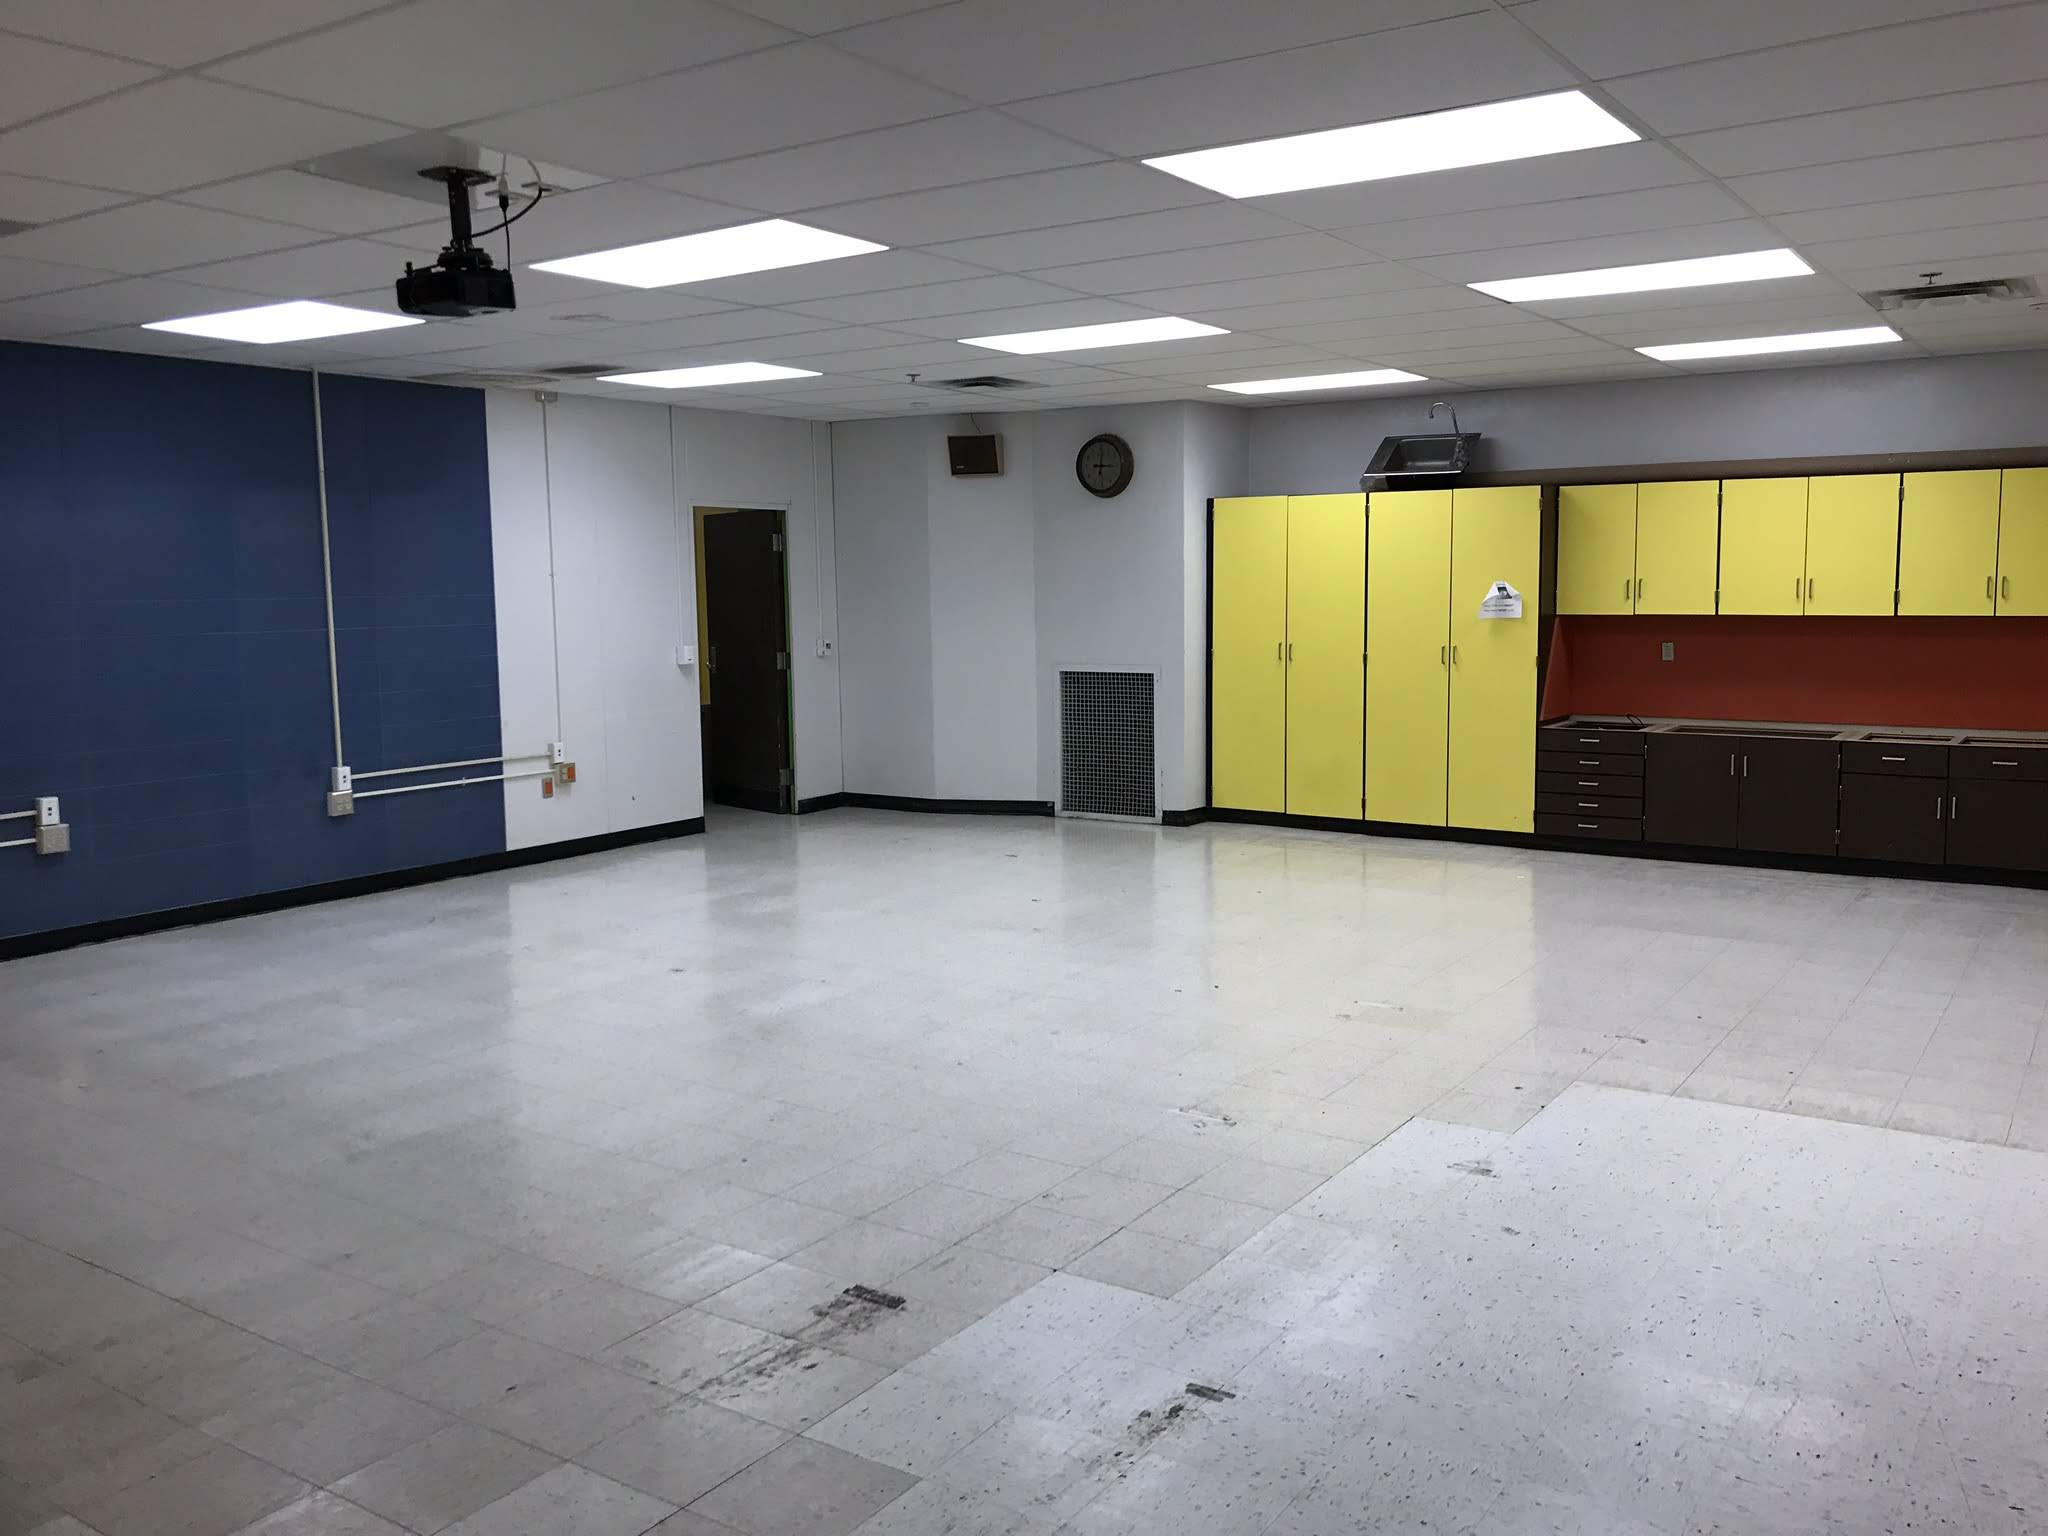 Future makerspace